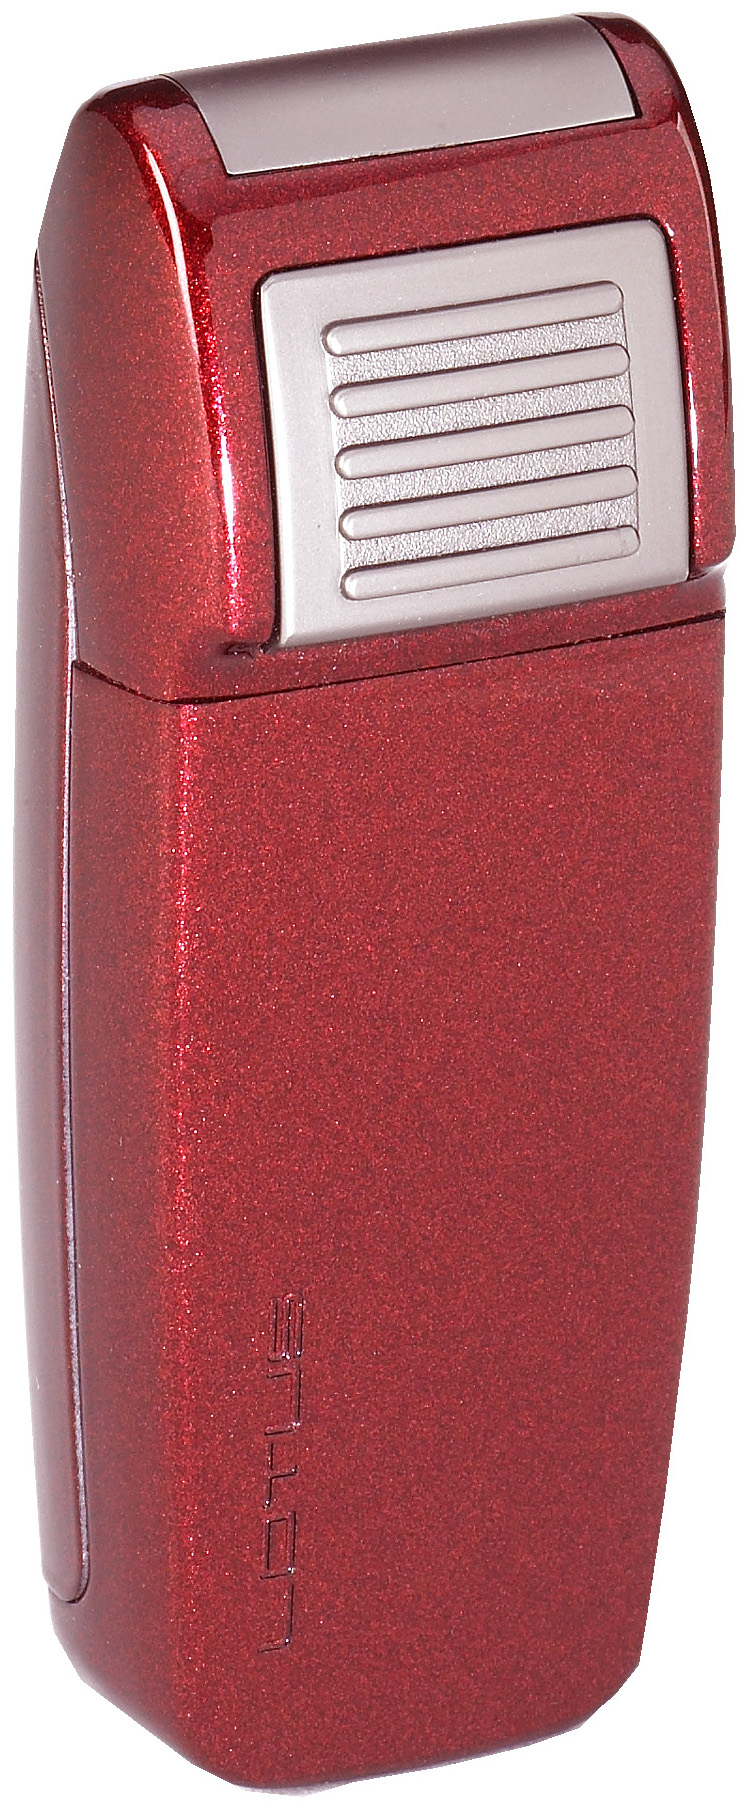 Lotus L34 Retro Double Torch Lighter with Retracable Punch Red Metallic